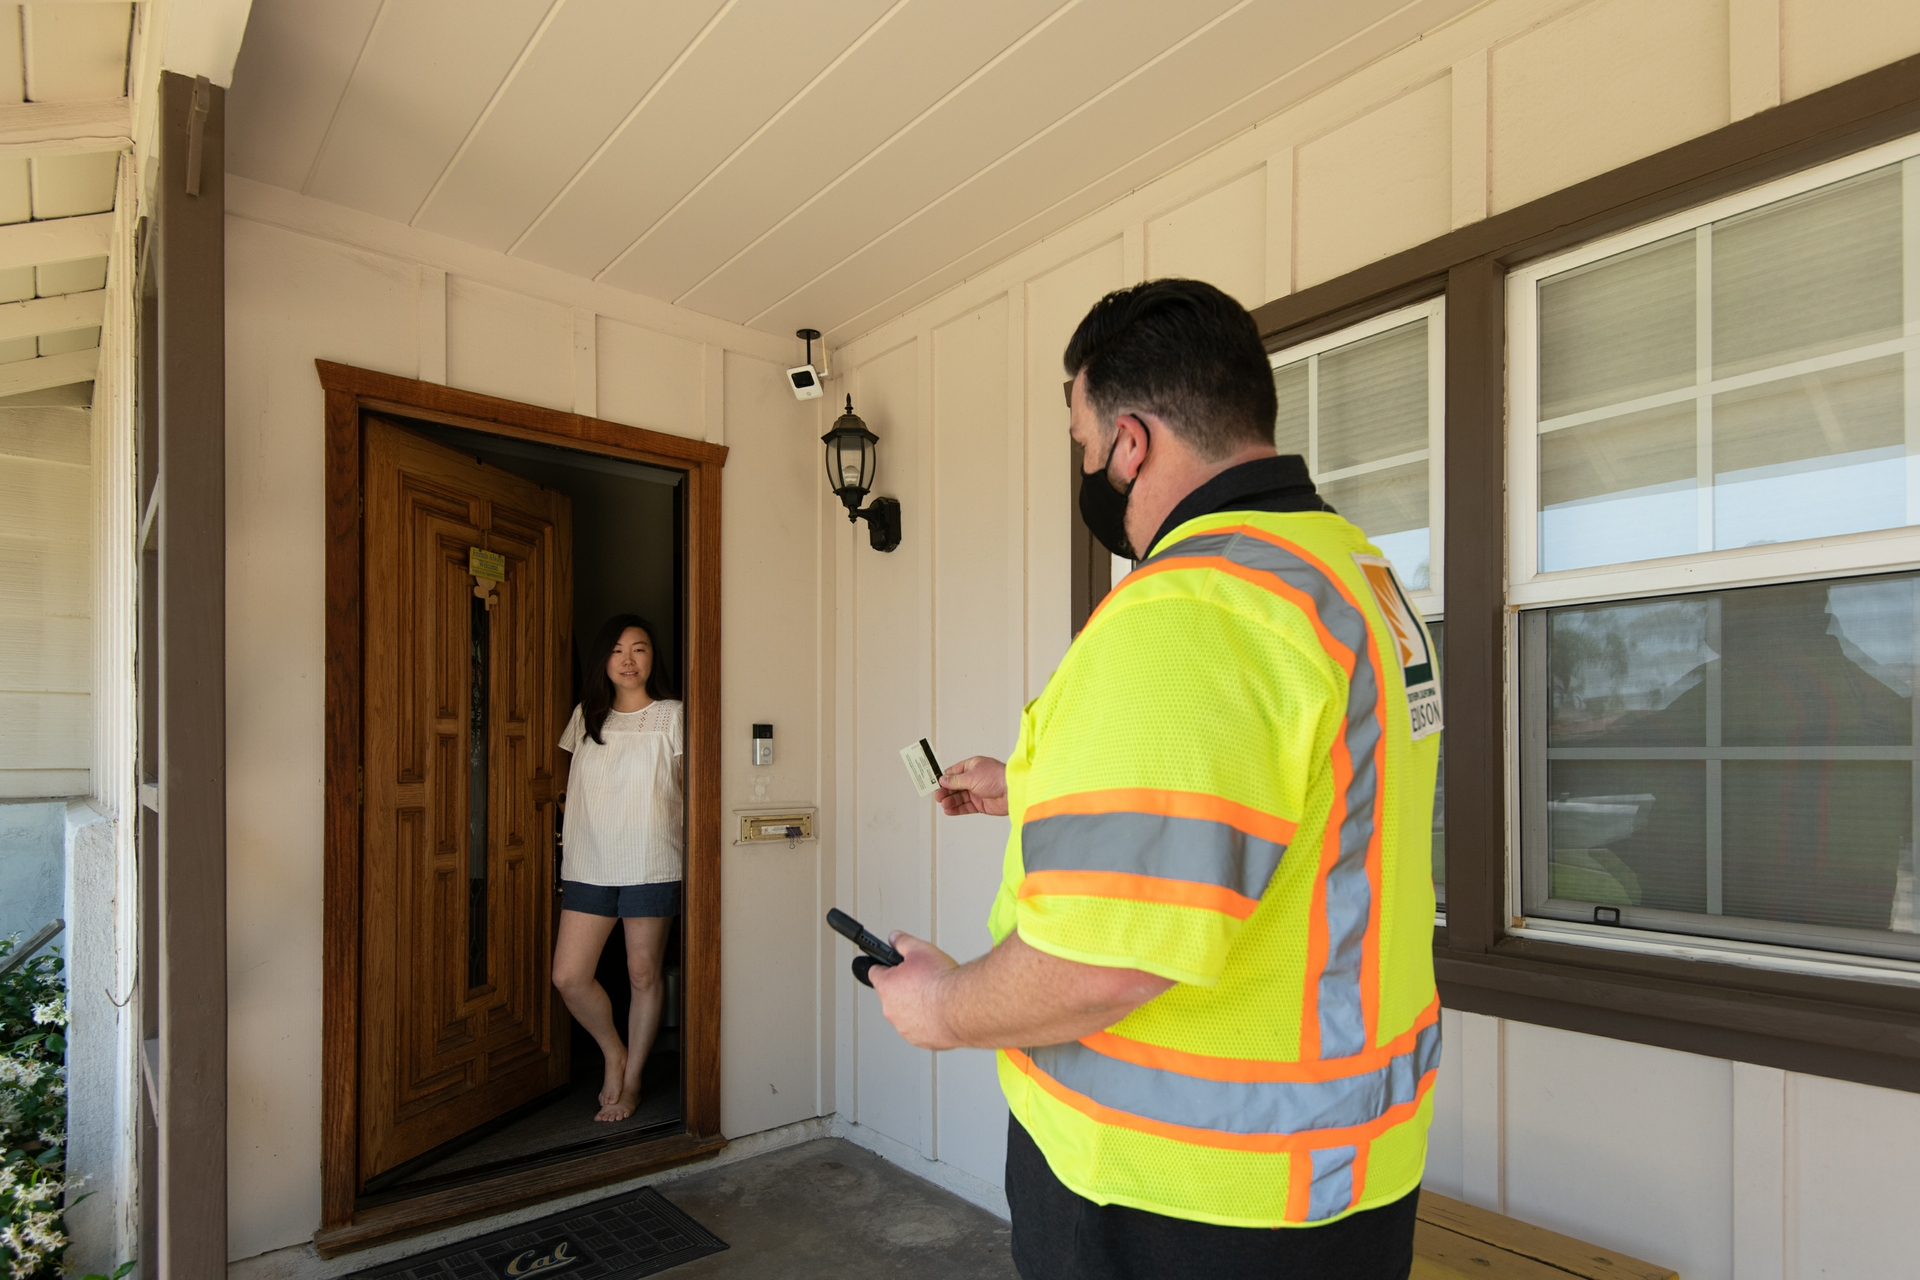 Electrical system inspectors often visit on average 20-25 different customer locations a day.